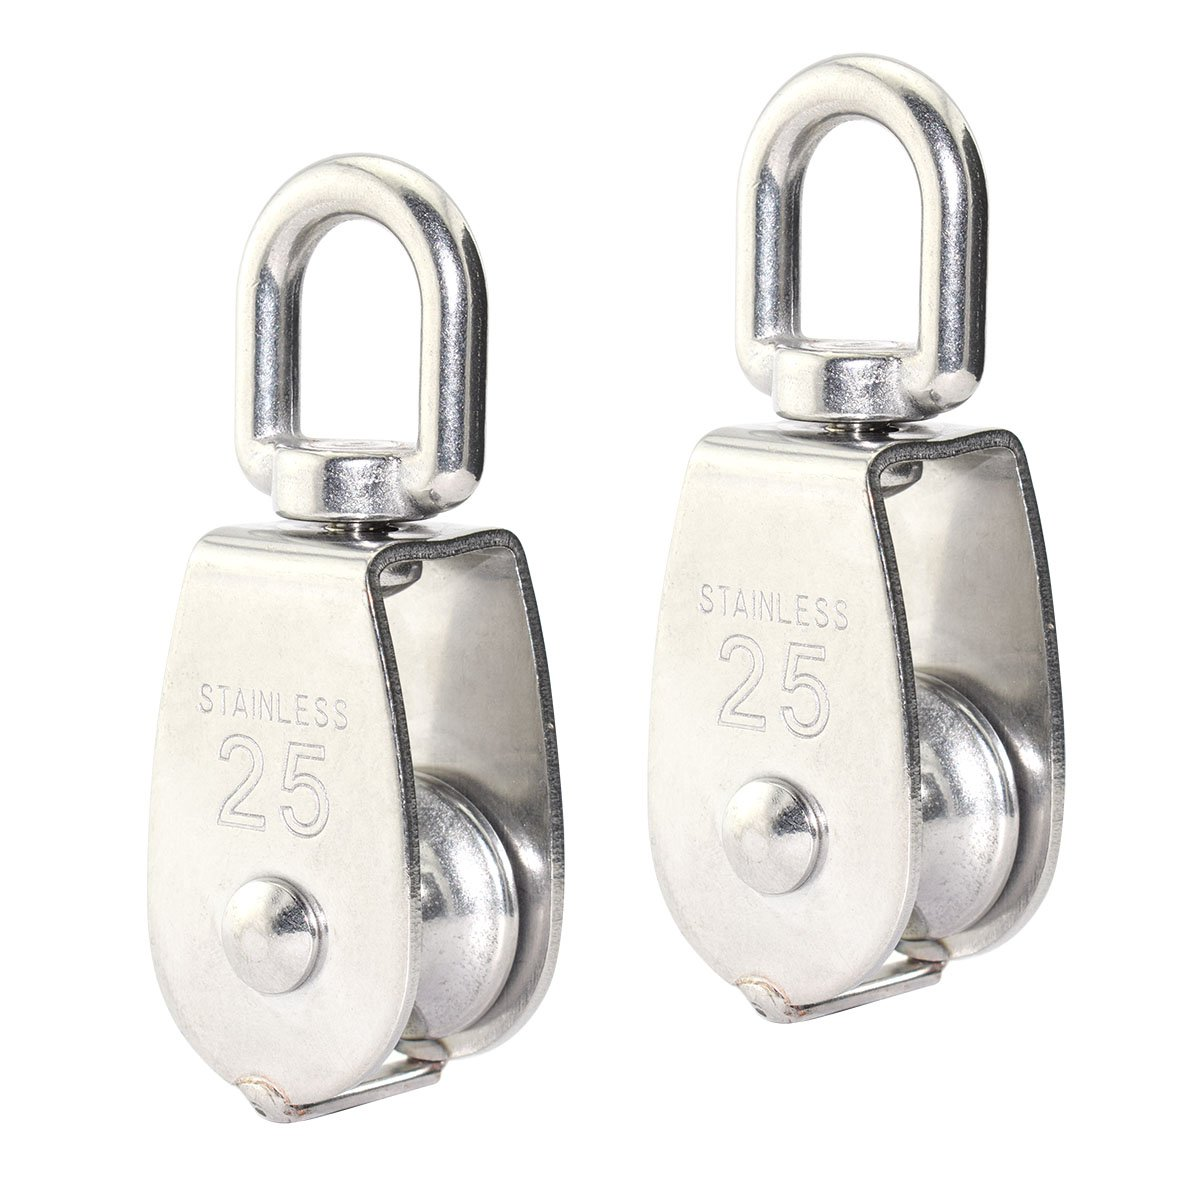 Lind Kitchen 2PCS Lifting Single Pulley Stainless Steel Heavy Duty Single Wheel Swivel Lifting Rope Pulley Block M25